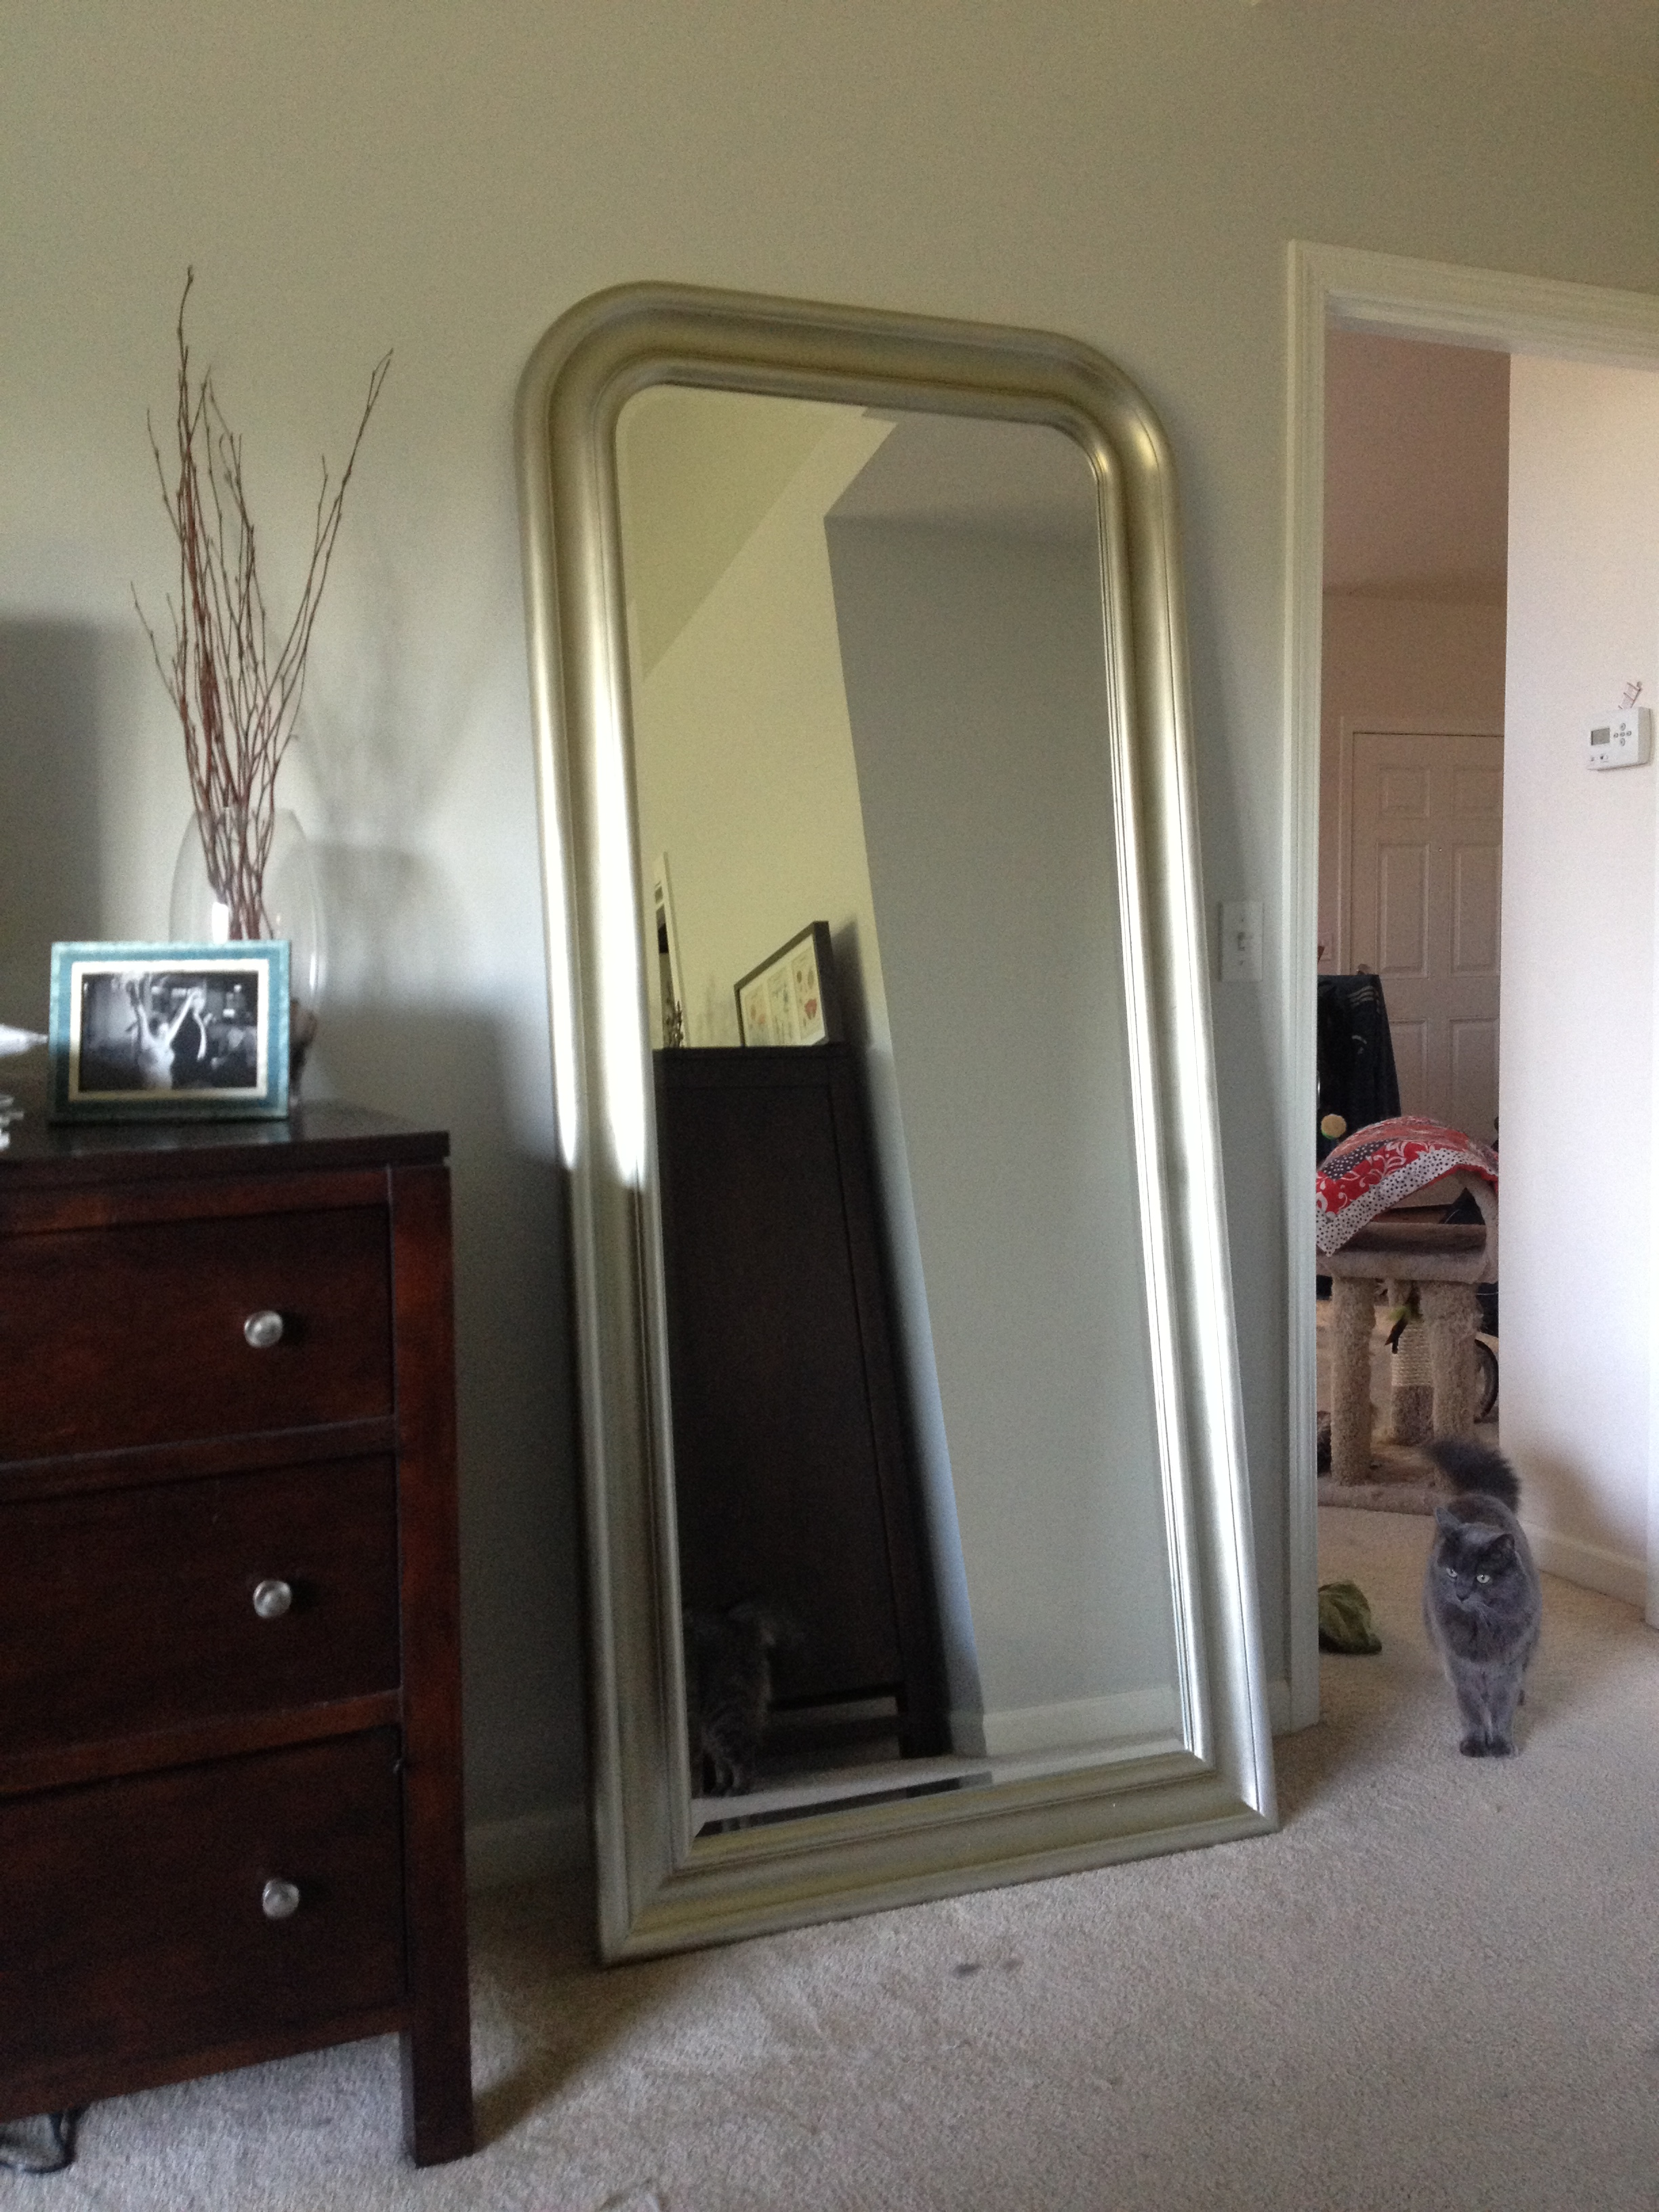 3 way mirror full length